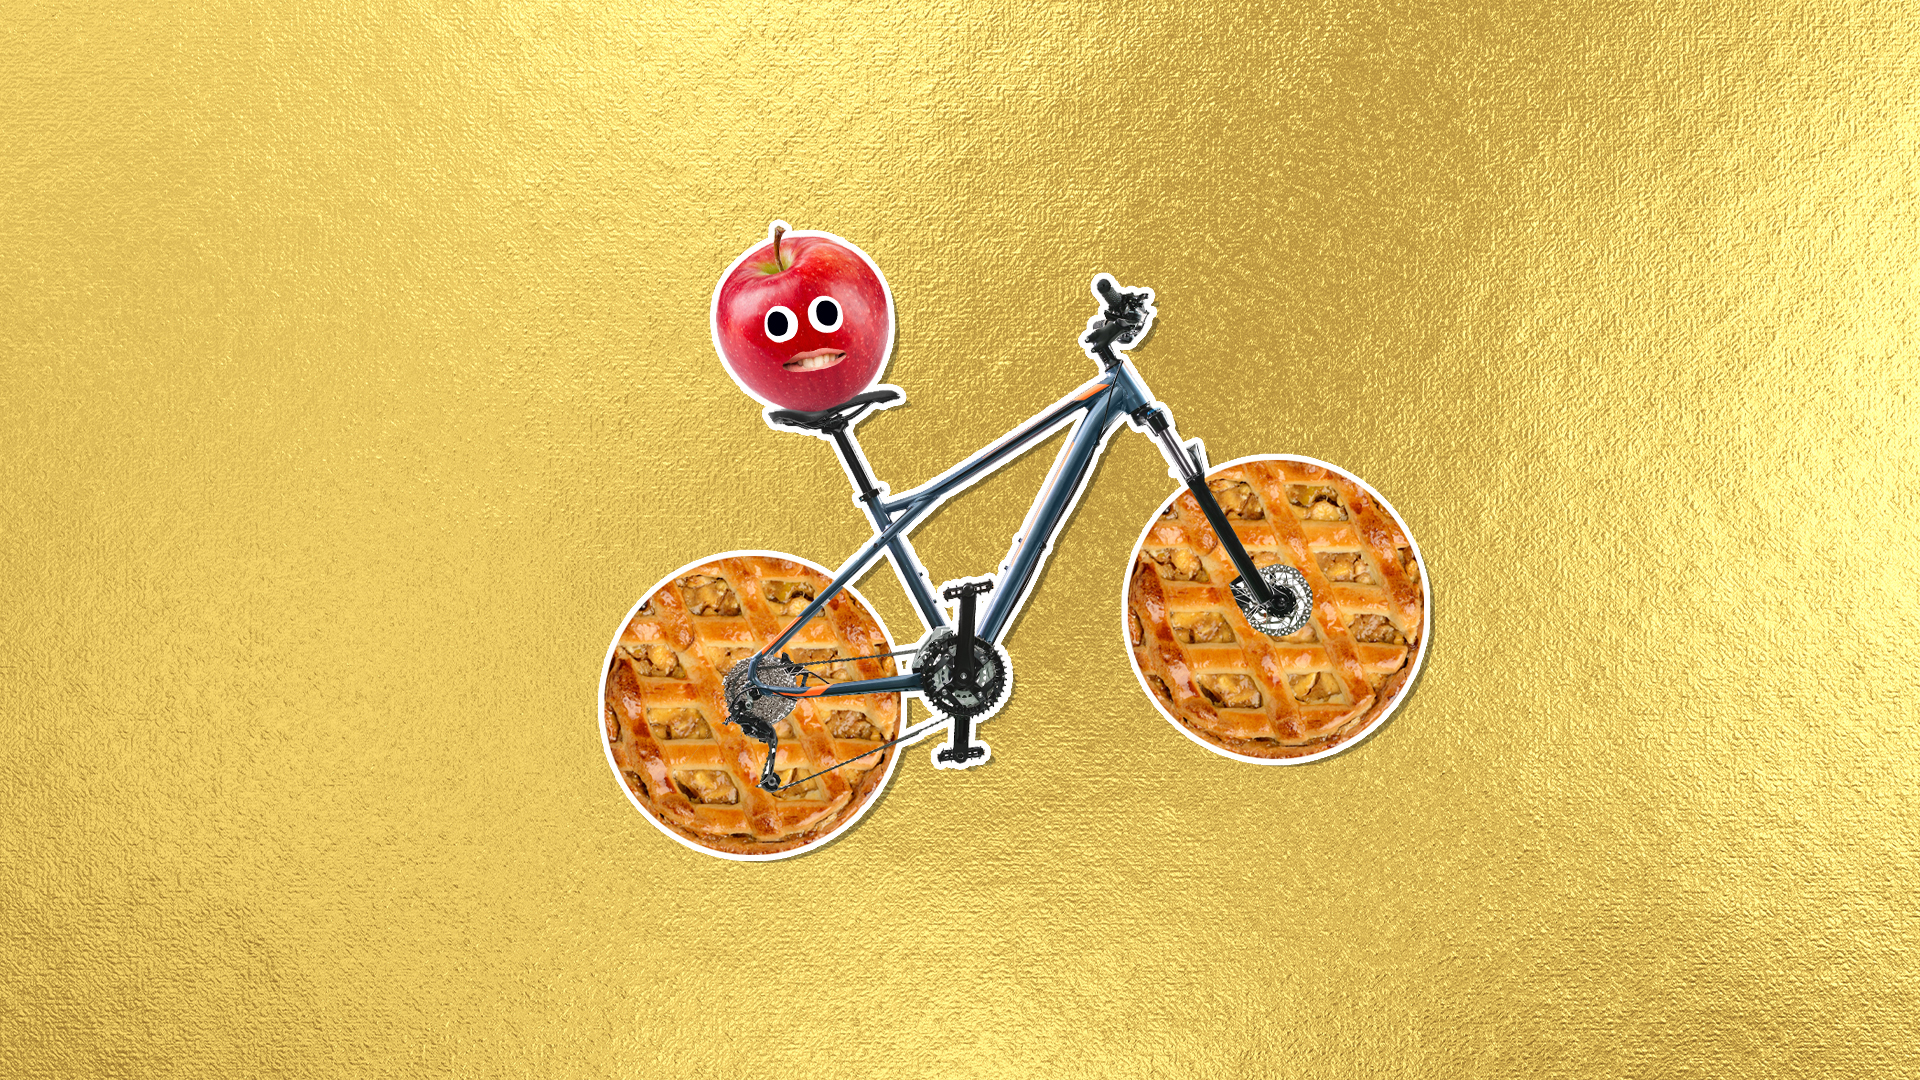 A bike with pies for tyres